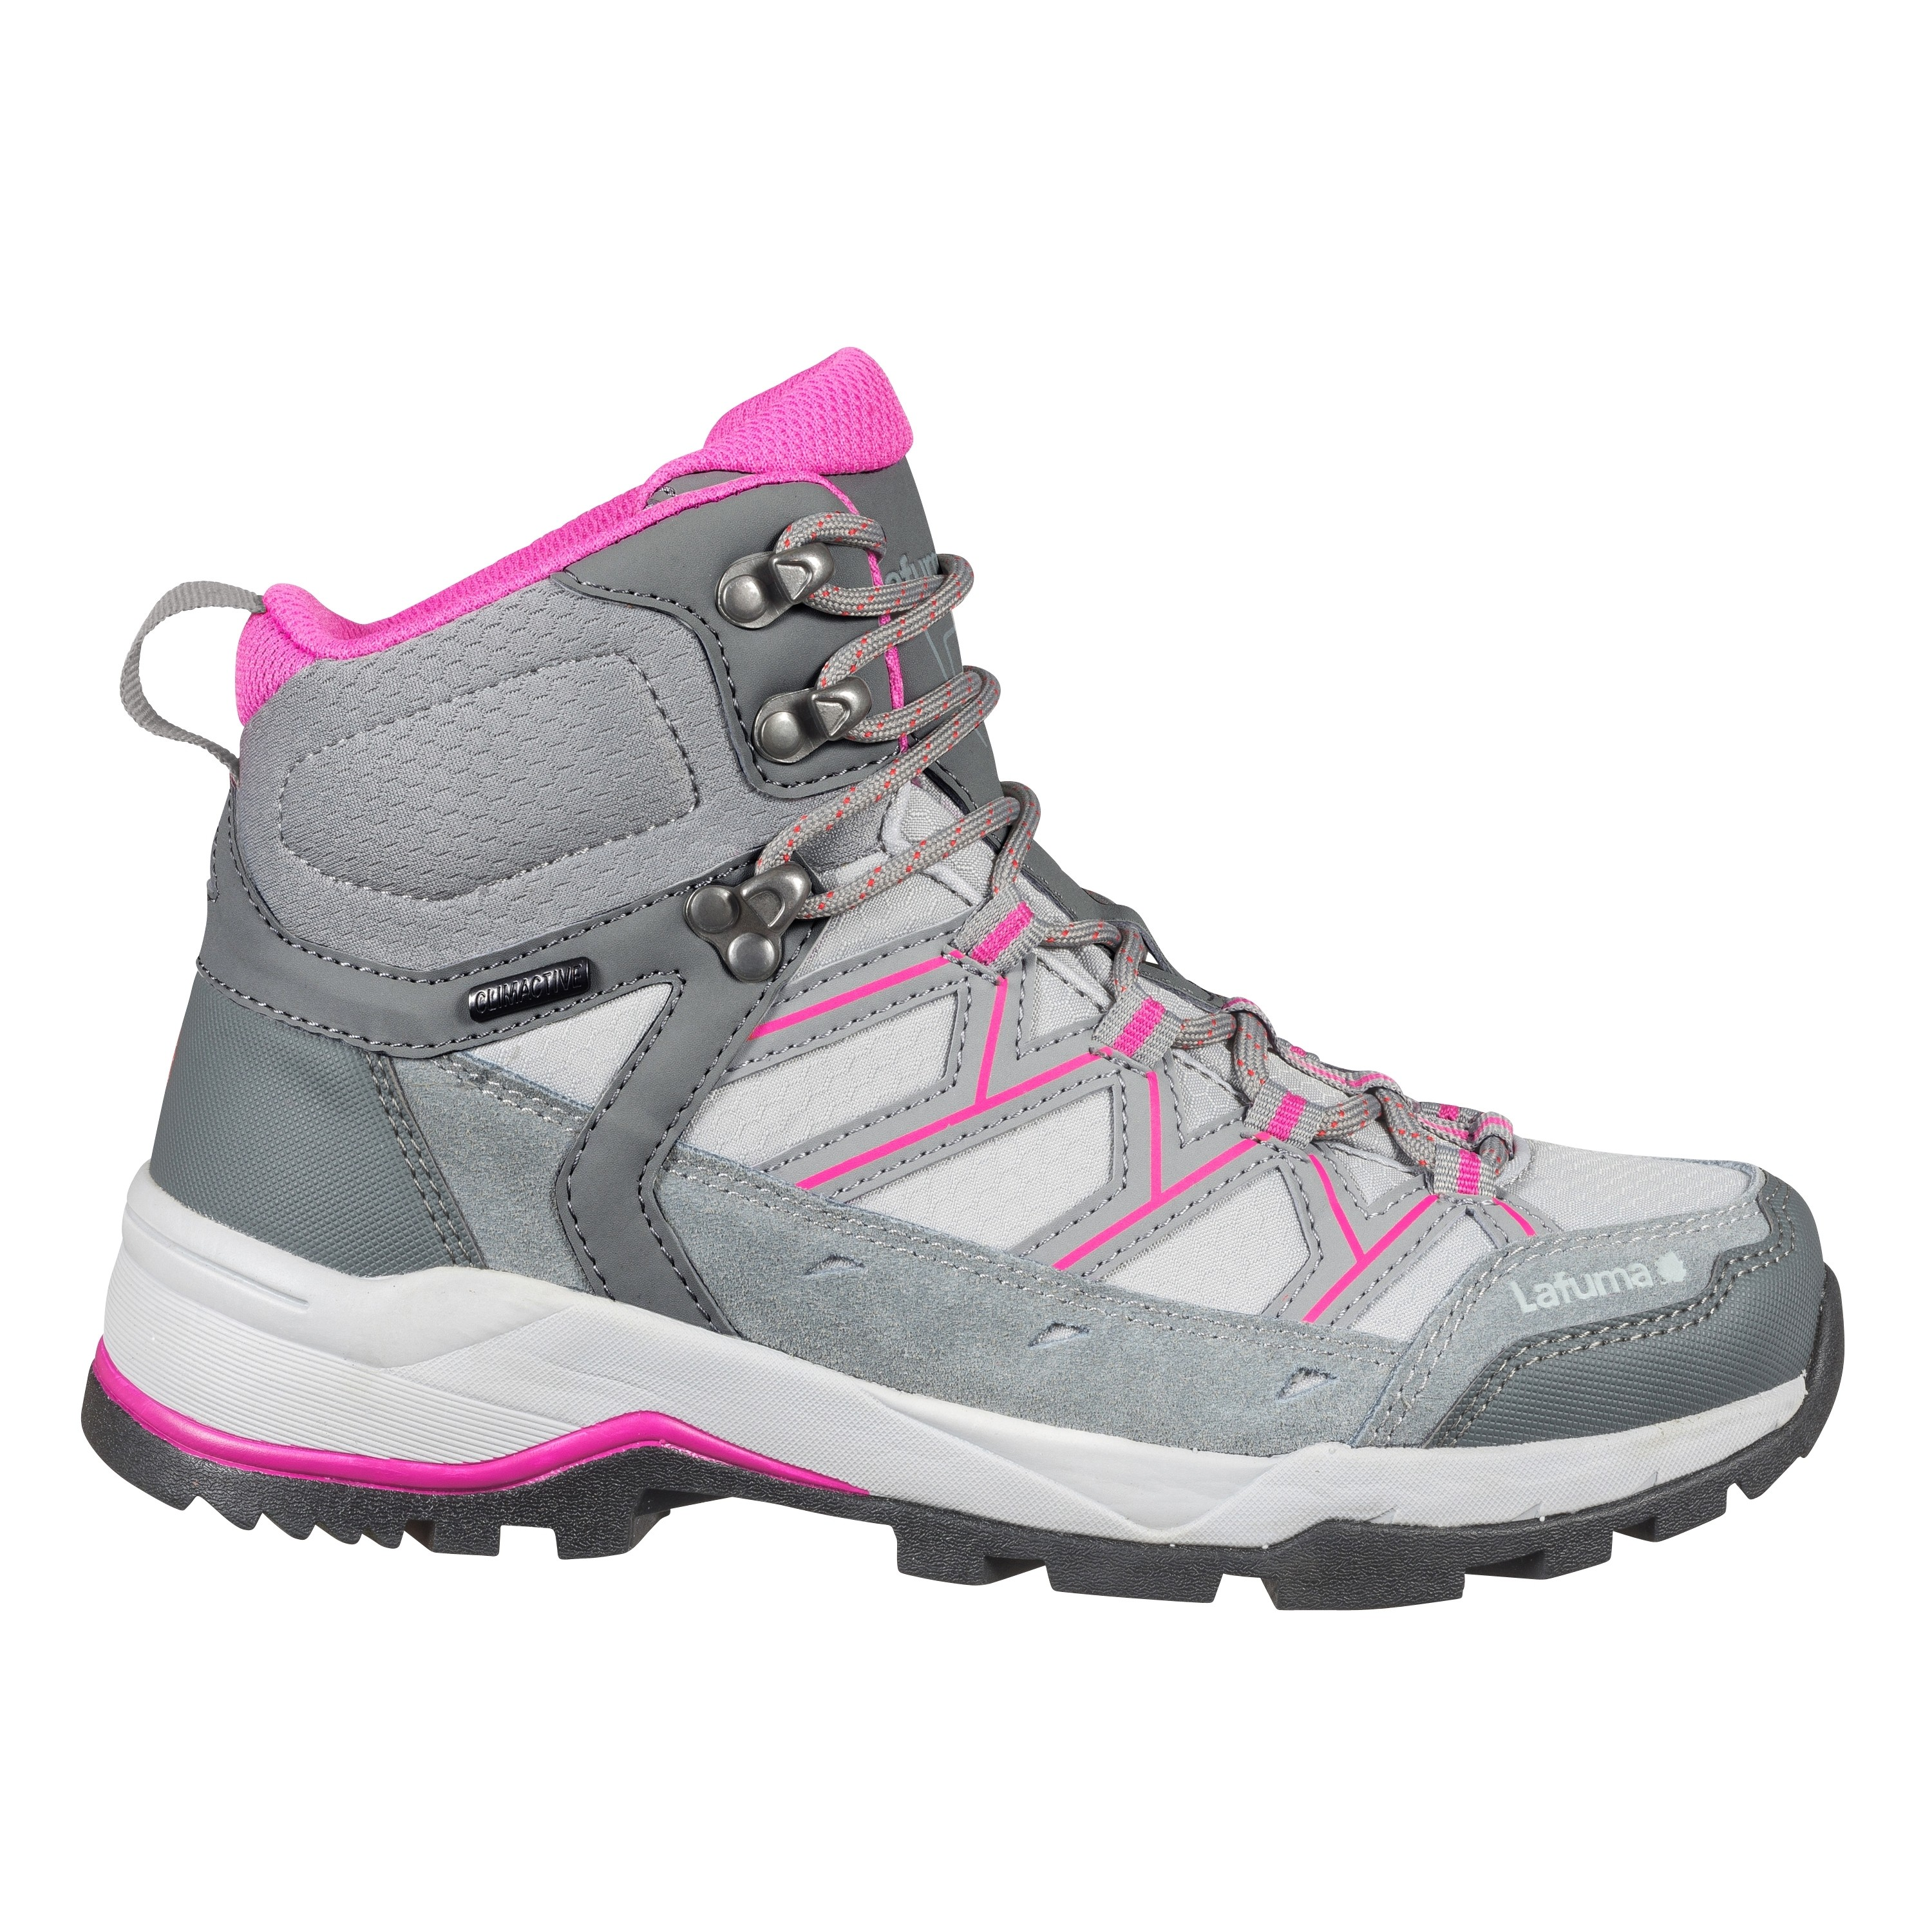 37 Best Camping Footwear images | Footwear, Hiking boots, Shoes